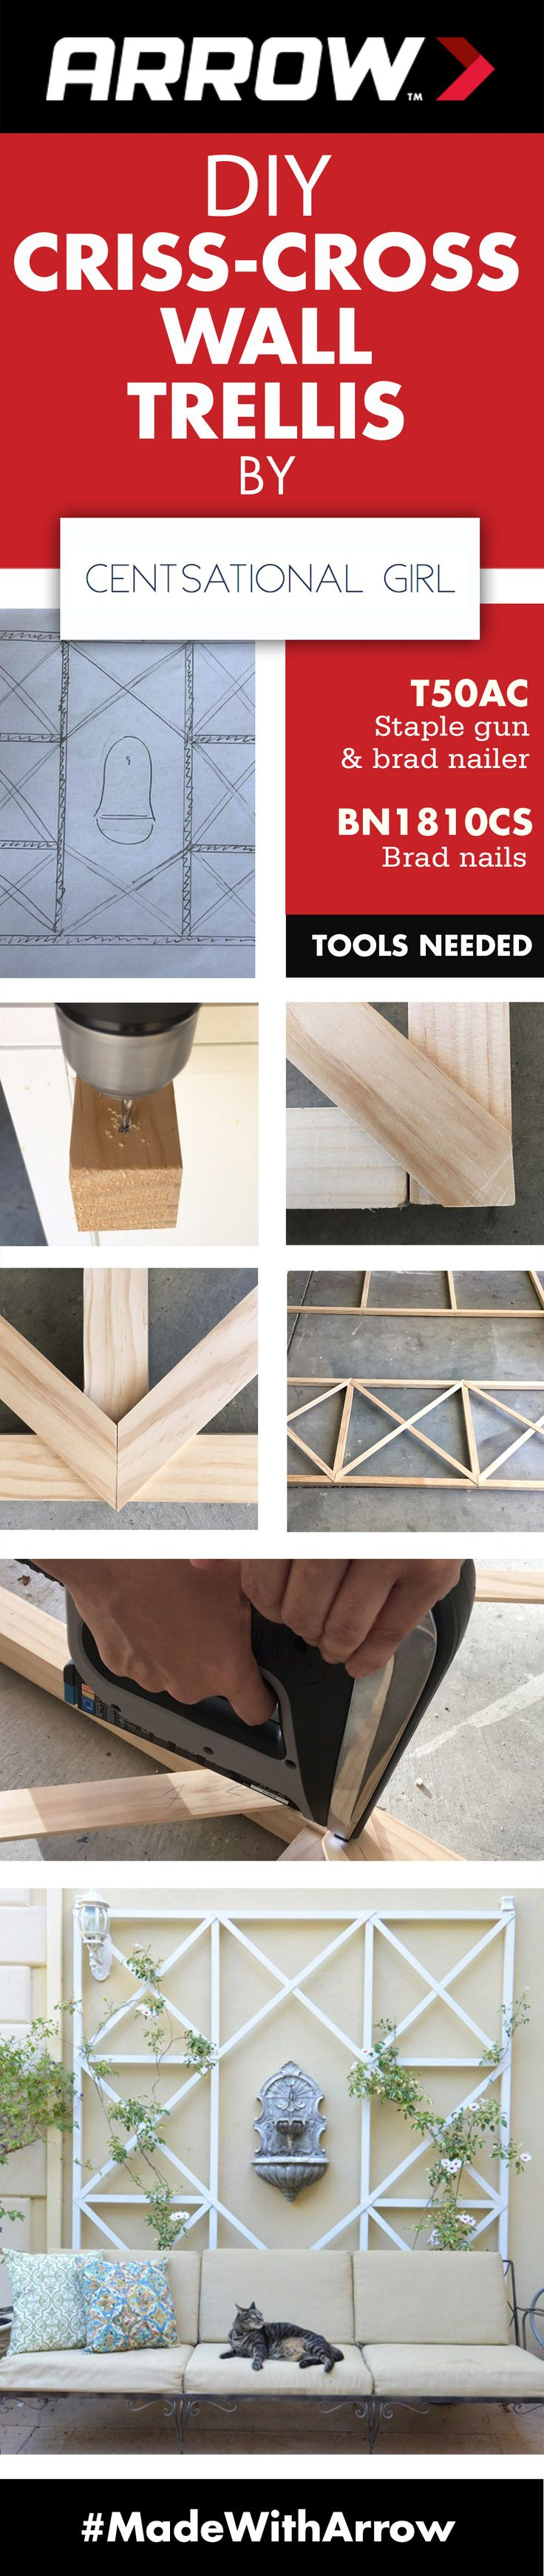 DIY Criss-Cross Wall Trellis by Centsational Girl || Make your outdoor space beautiful by building a criss-cross wall trellis with wood, a drill and Arrow's T50AC Professional Electric Staple Gun & Nailer. Follow Arrow Fastener on Pinterest for more great projects! www.arrowfastener.com